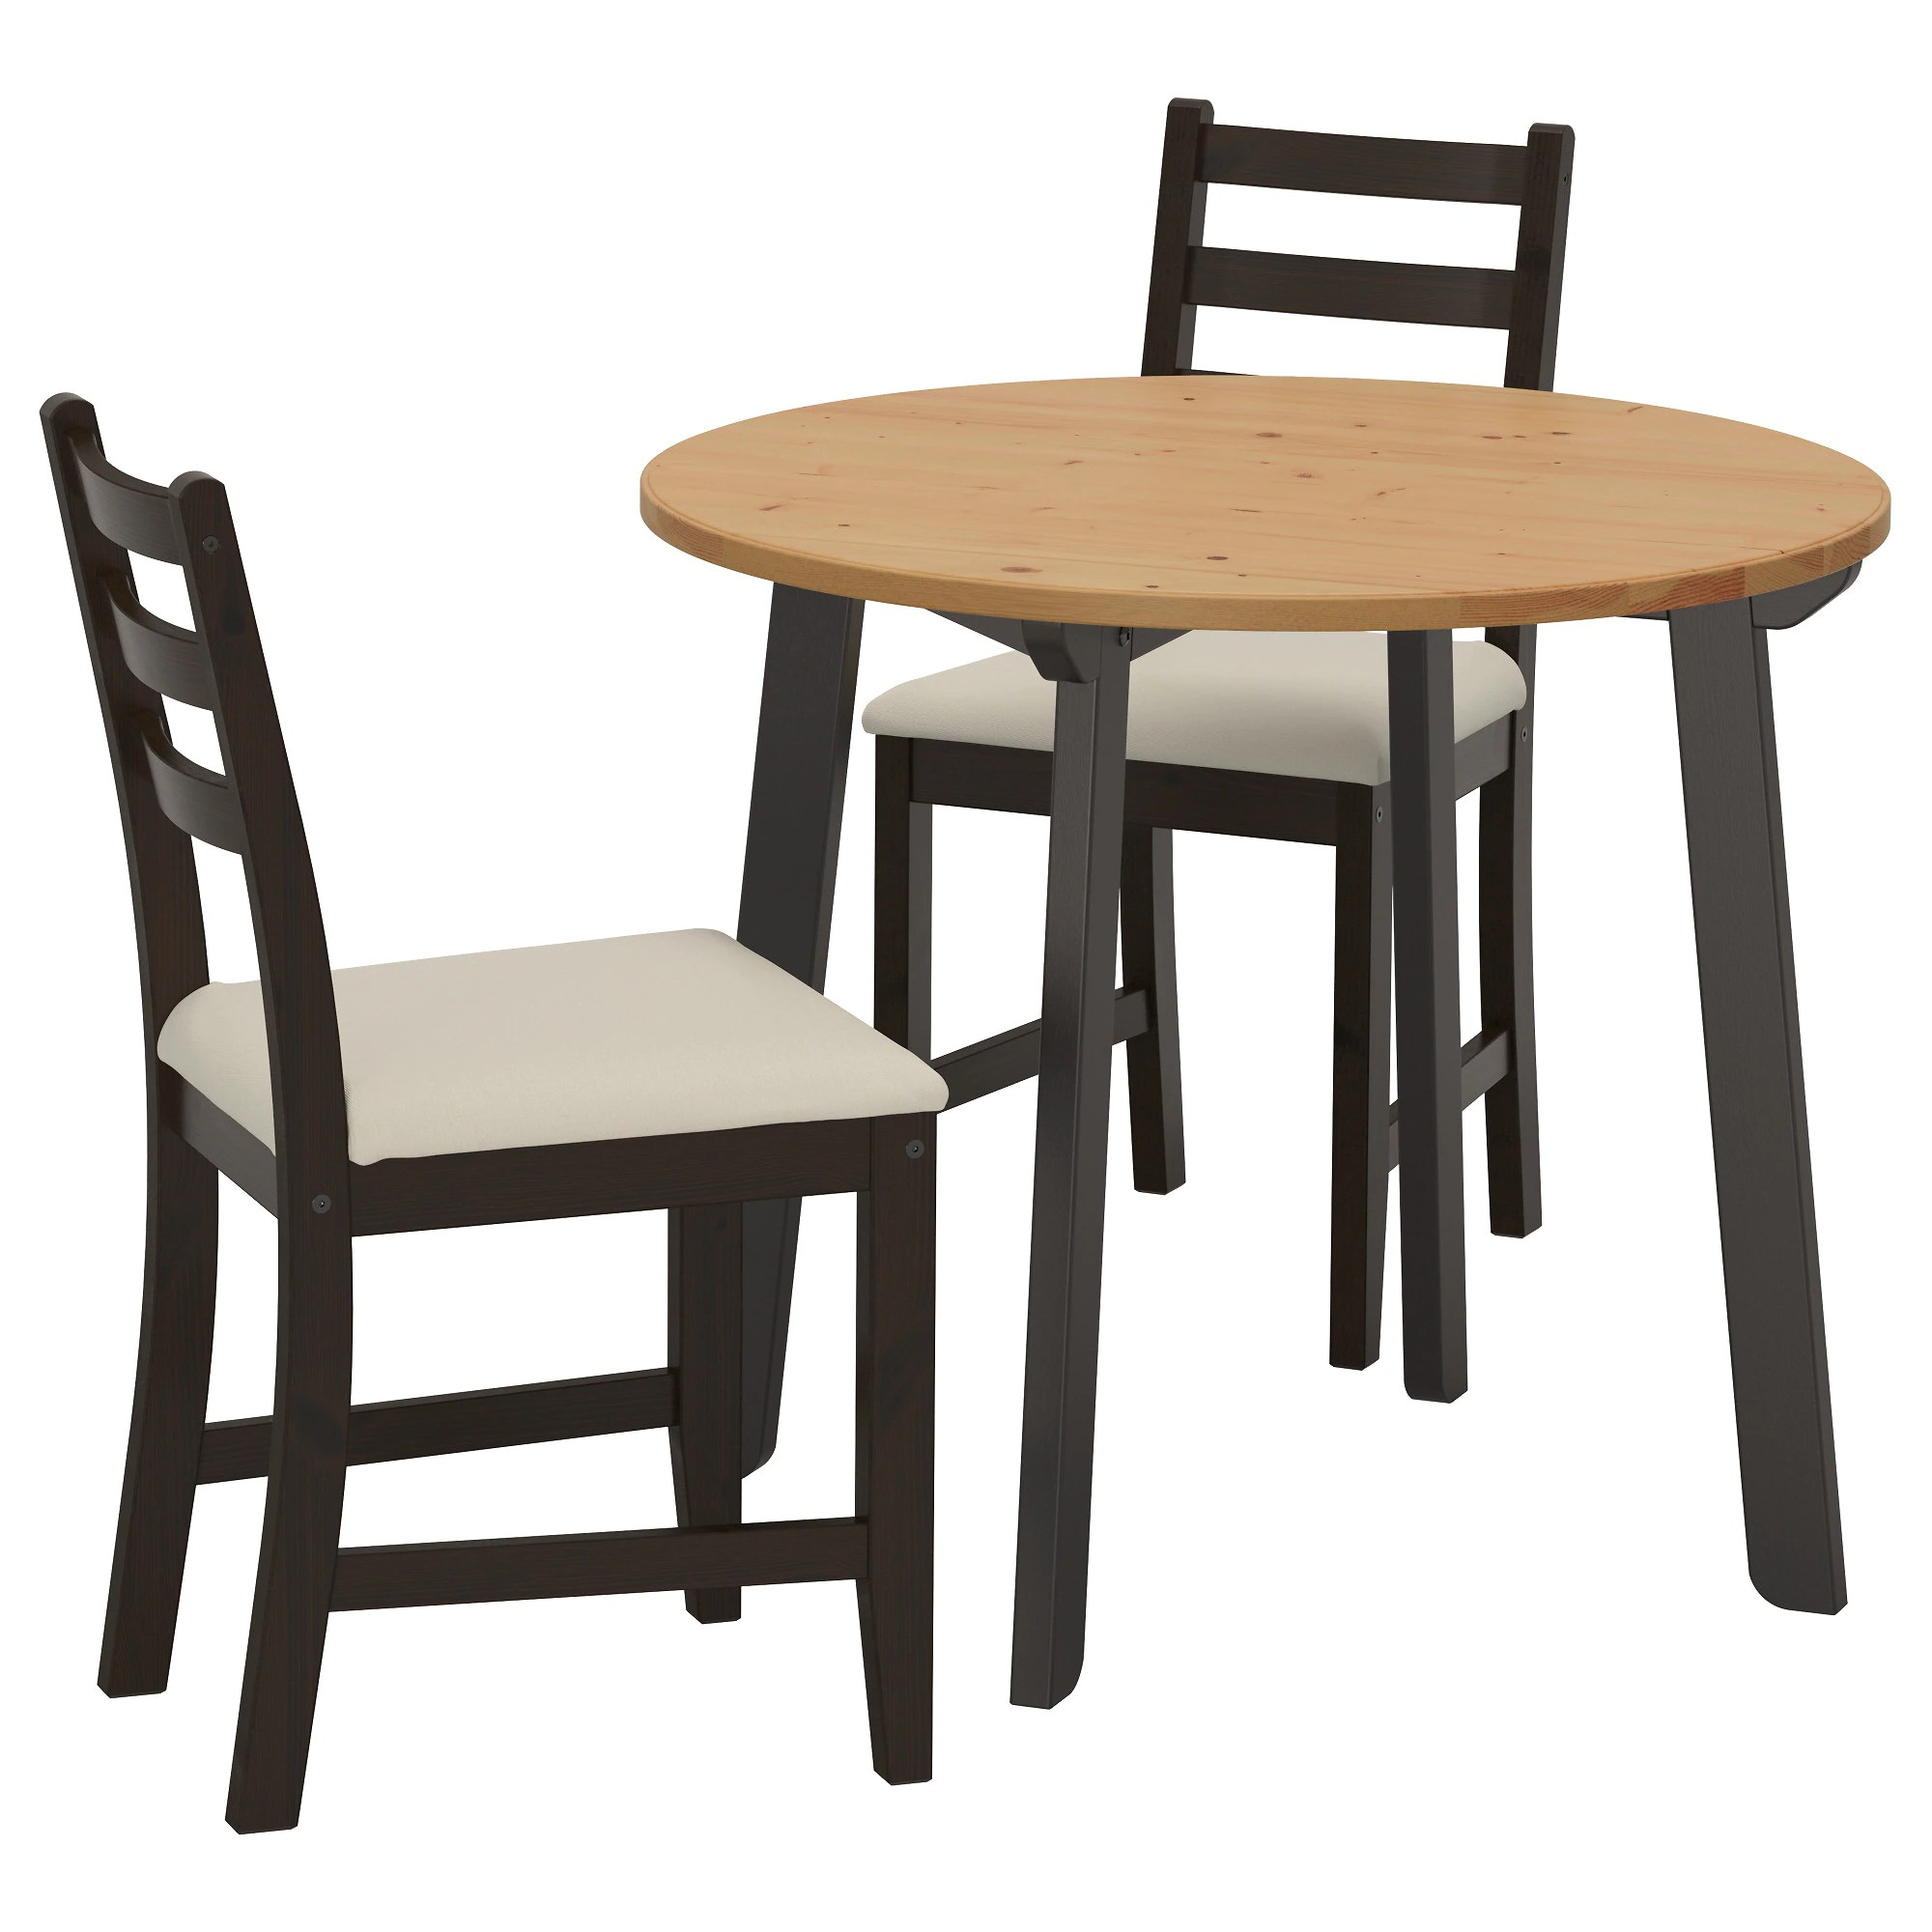 Table With 2 Chairs Gamlared Lerhamn Table And 2 Chairs Light Antique Stain Black Brown Vittaryd Beige